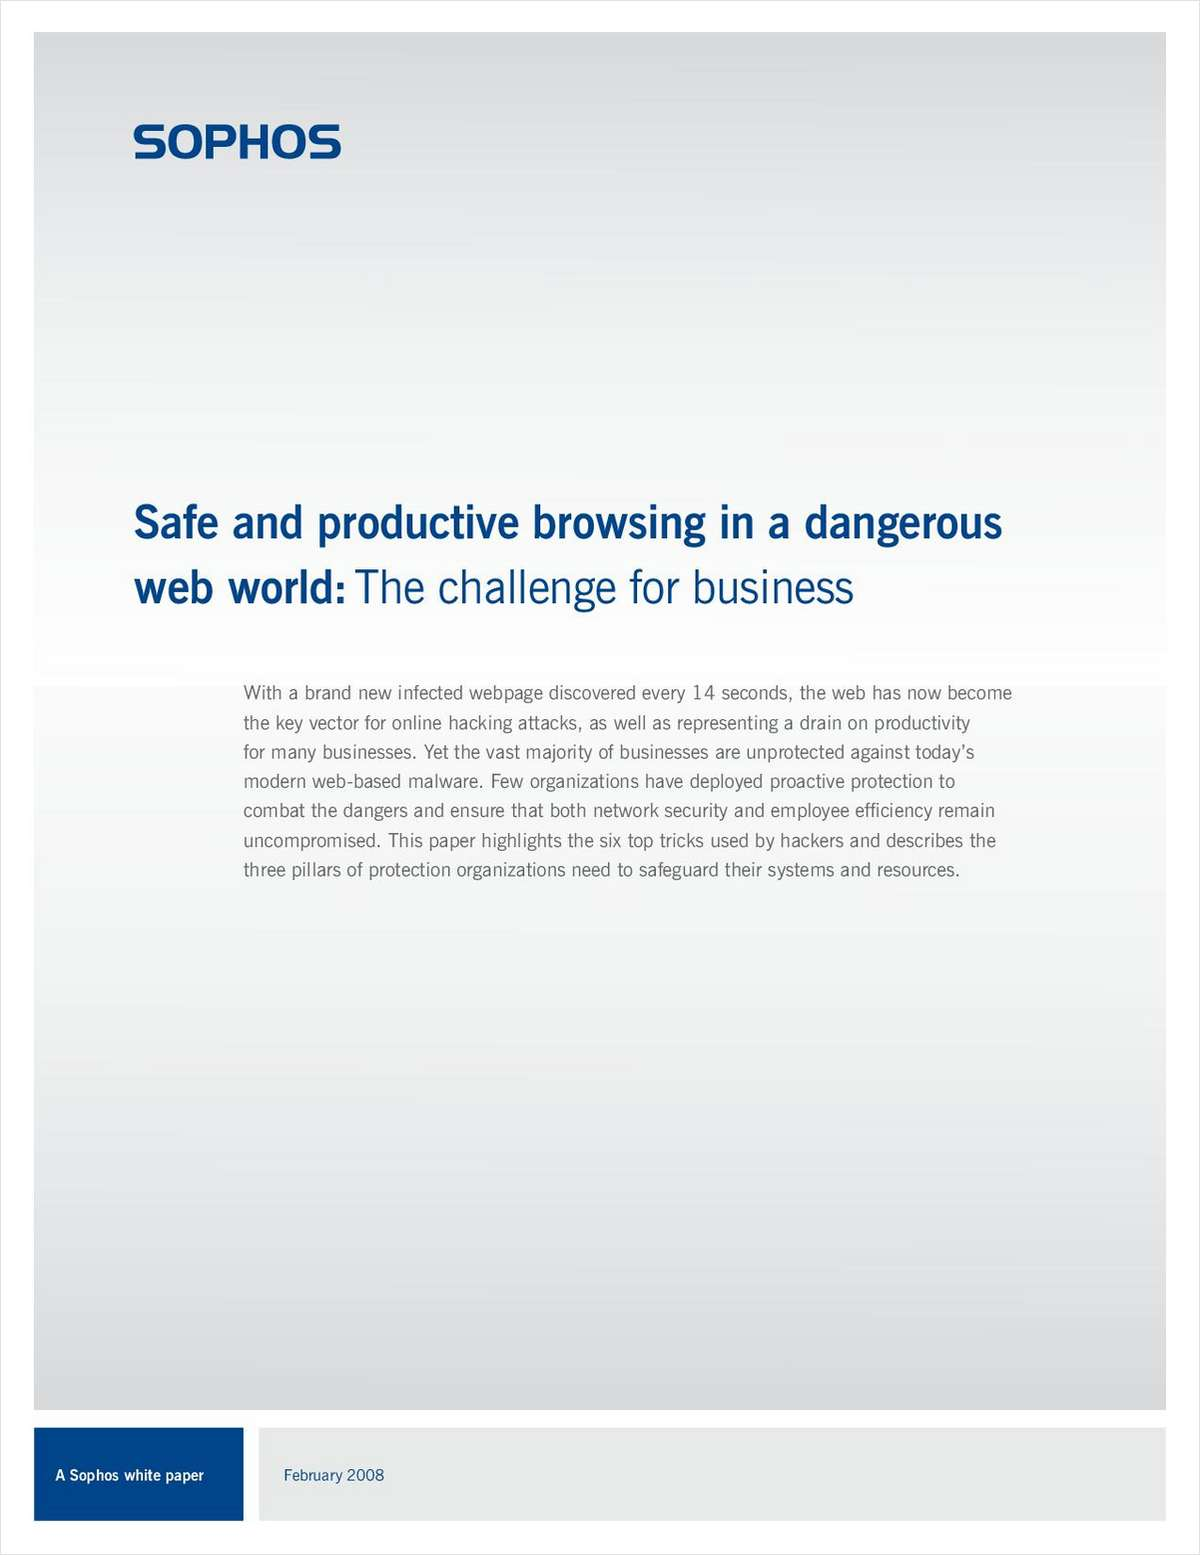 Safe and Productive Browsing in a Dangerous Web World: The Challenge for Business